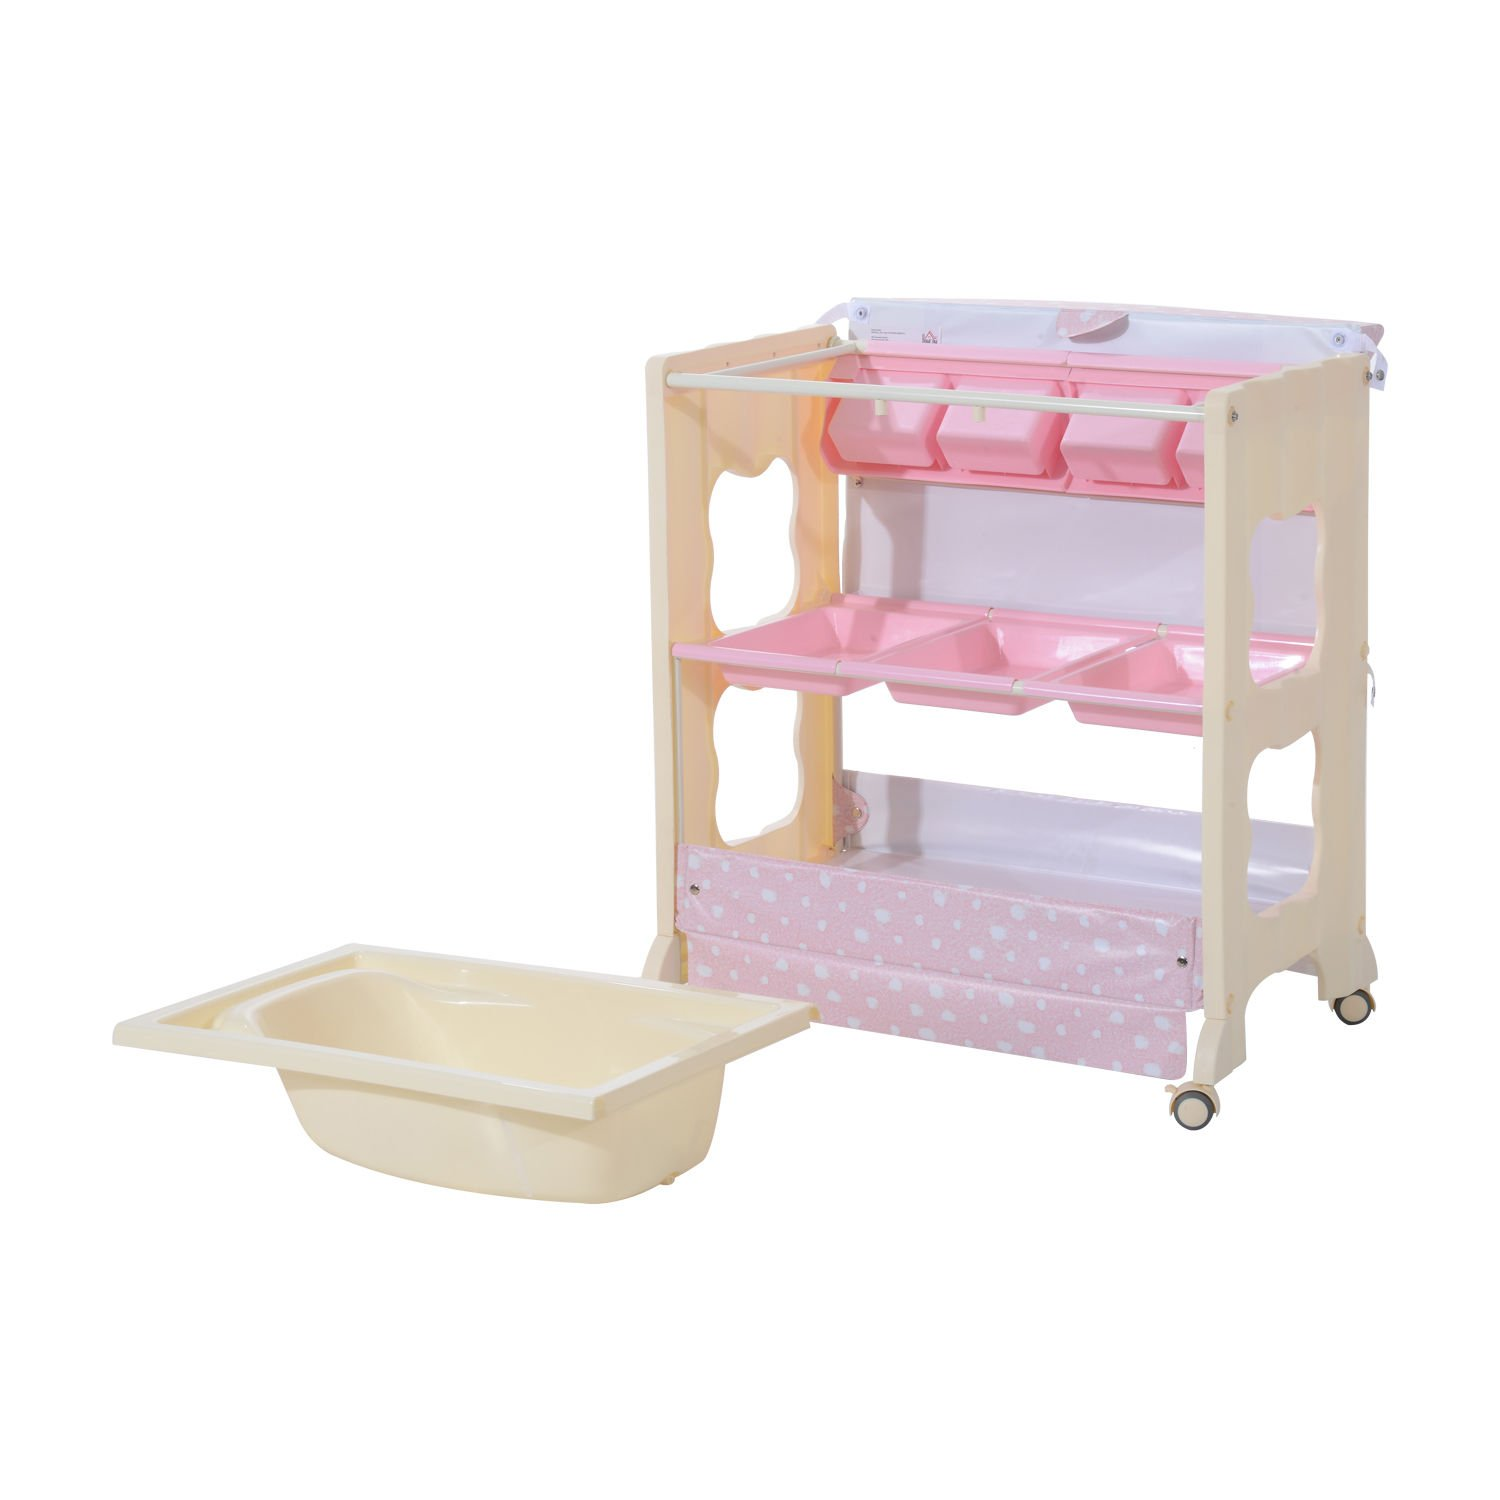 HOMCOM Baby Changing Table Station Portable Changer Baby Storage Bath Tub Unit Dresser w/ Wheels (Pink) Sold By MHSTAR UK400-003PK-NEW0331